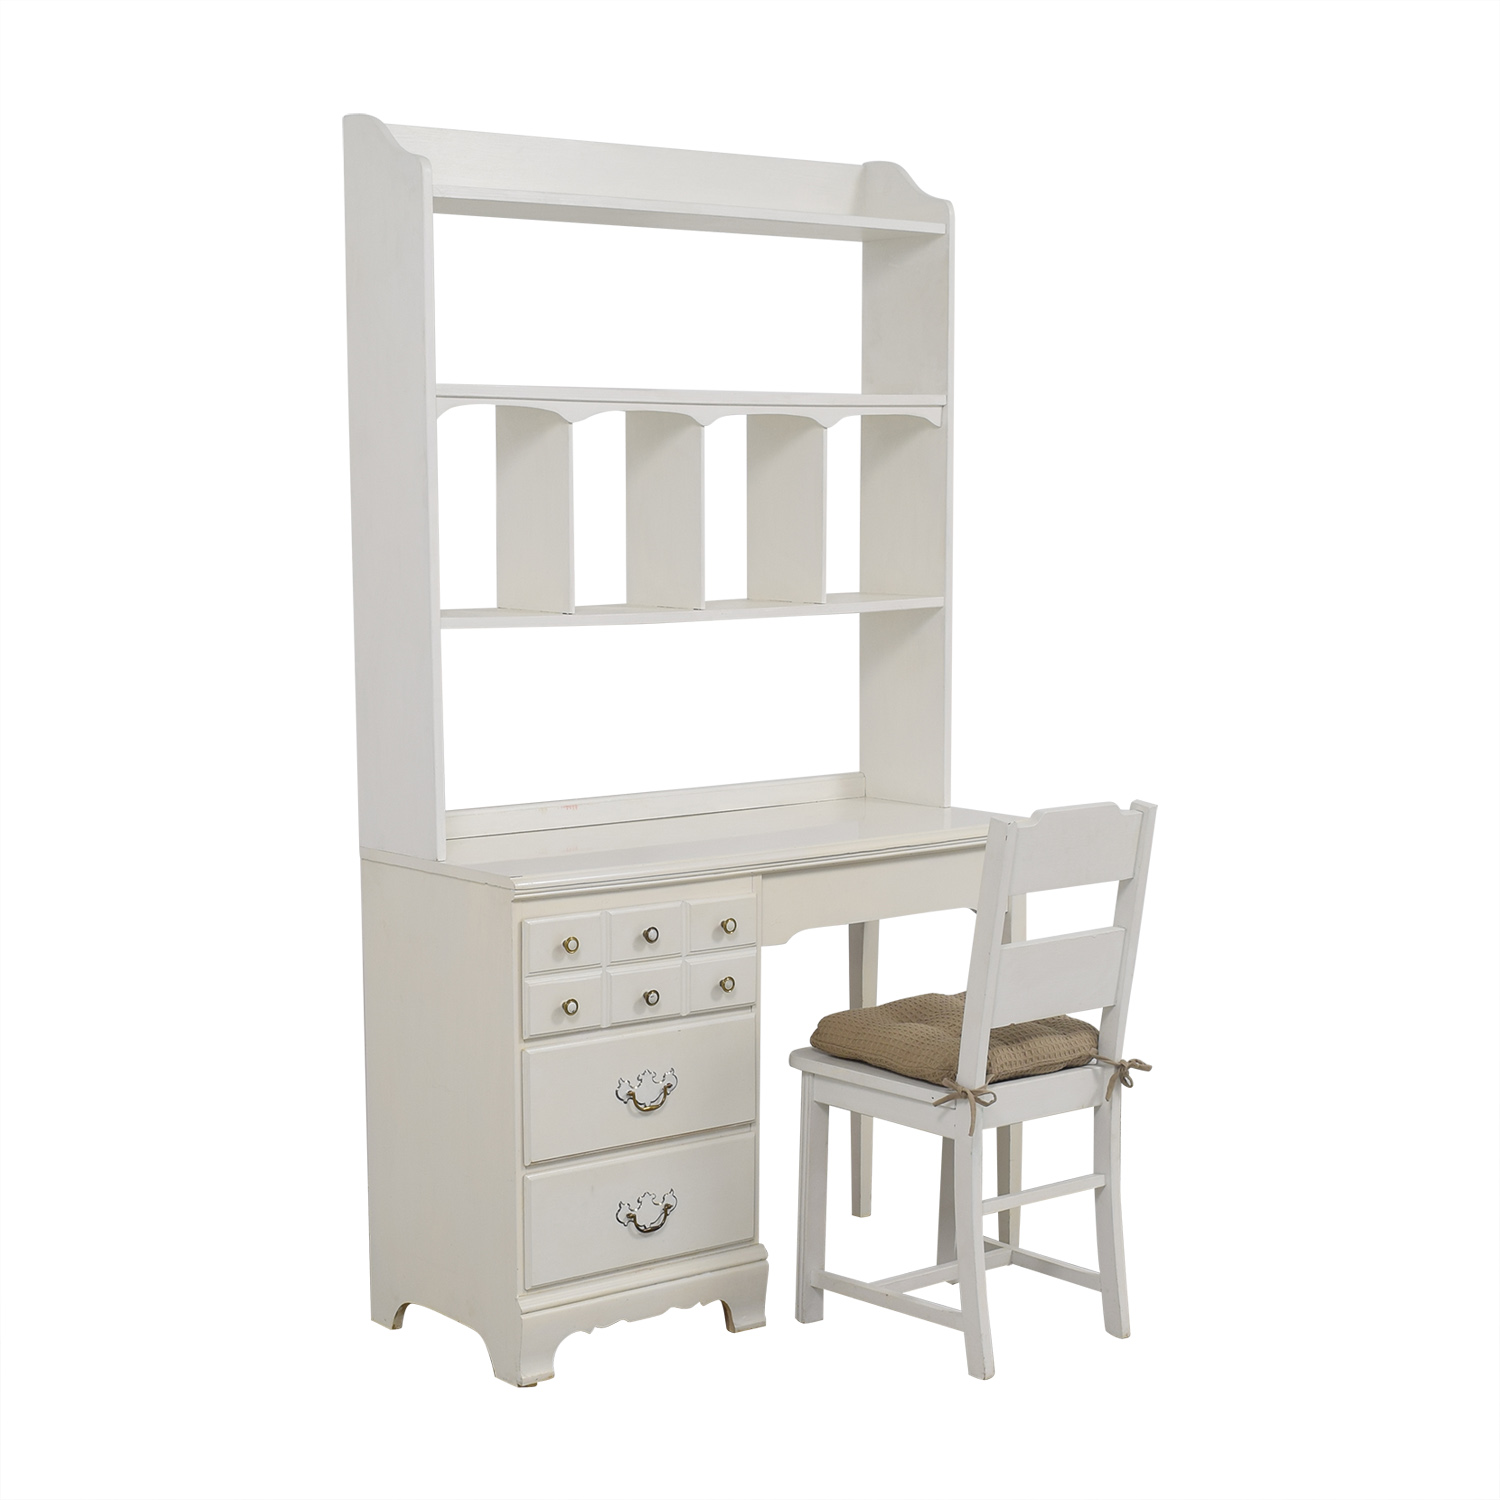 Lea Lea White Wood Three-Drawer Desk with Hutch and Chair Tables